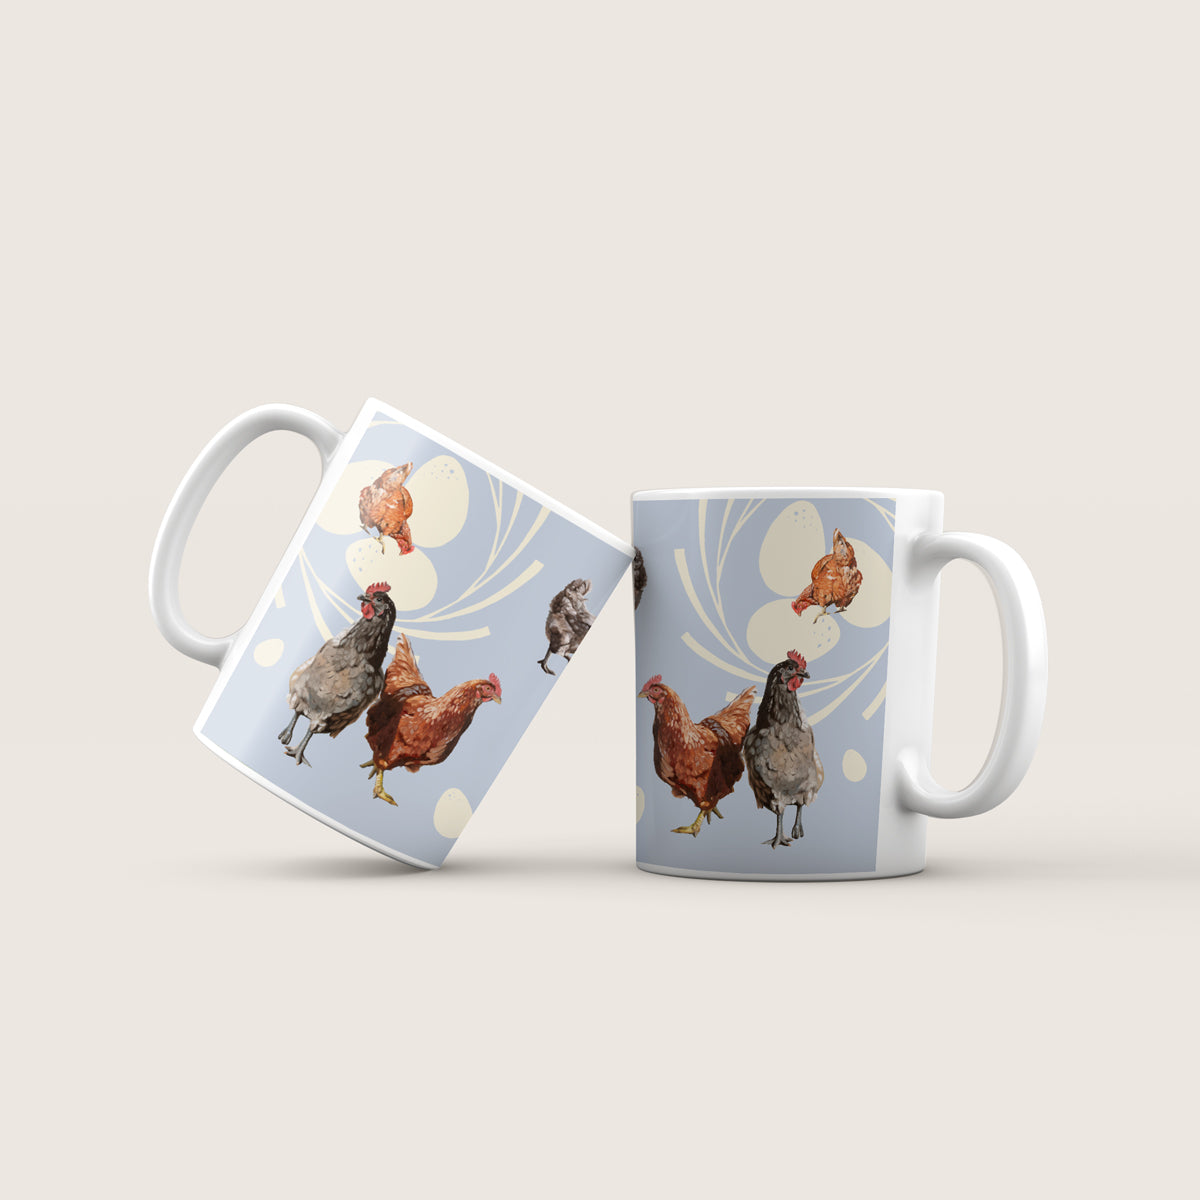 Chicken and egg mug